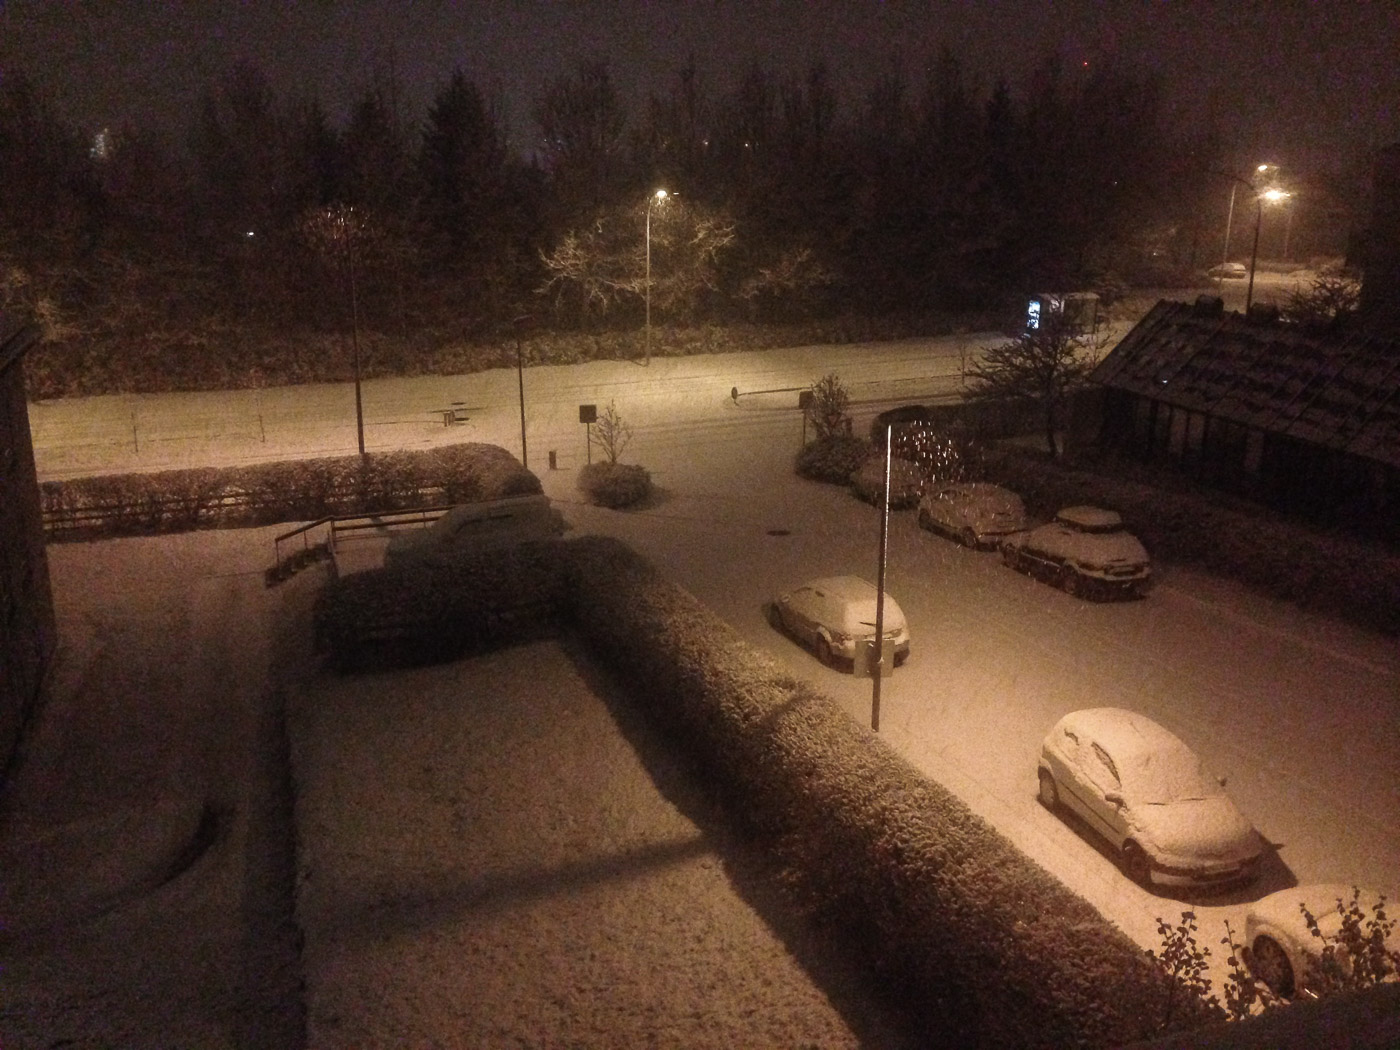 Reykjavík. Snow, a lot of snow. - Waking up, looking out of the window and seeing this :-). Happy! (21 October 2014)